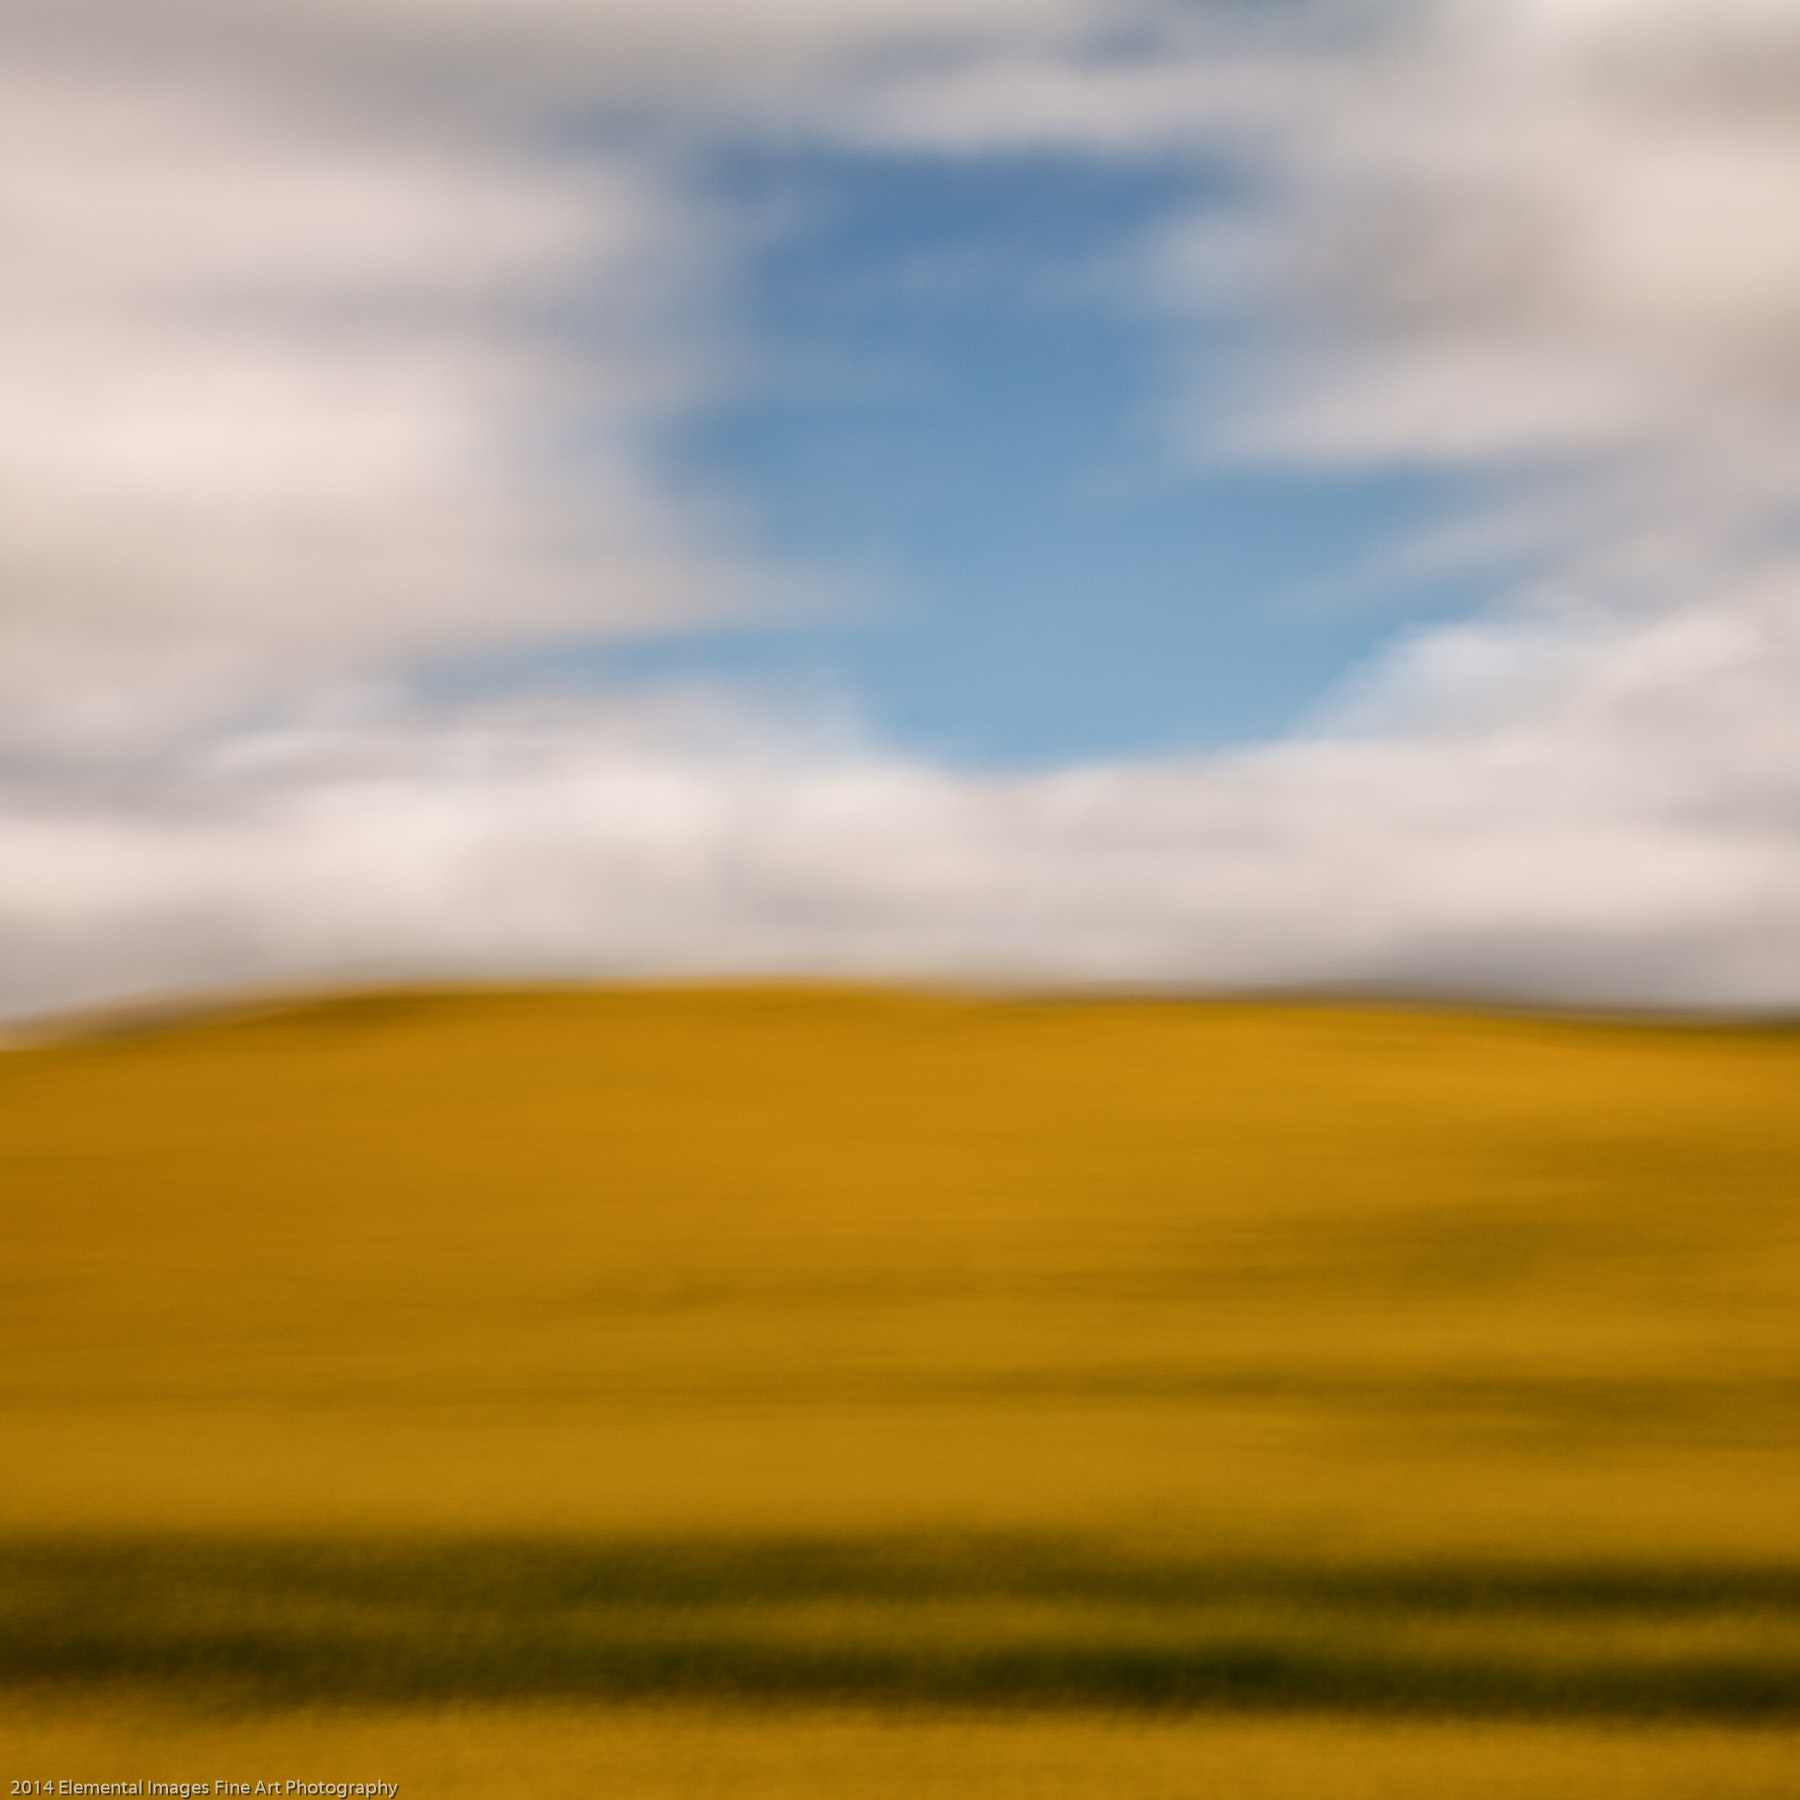 Palouse XLIX | The Palouse | WA | USA - © 2014 Elemental Images Fine Art Photography - All Rights Reserved Worldwide